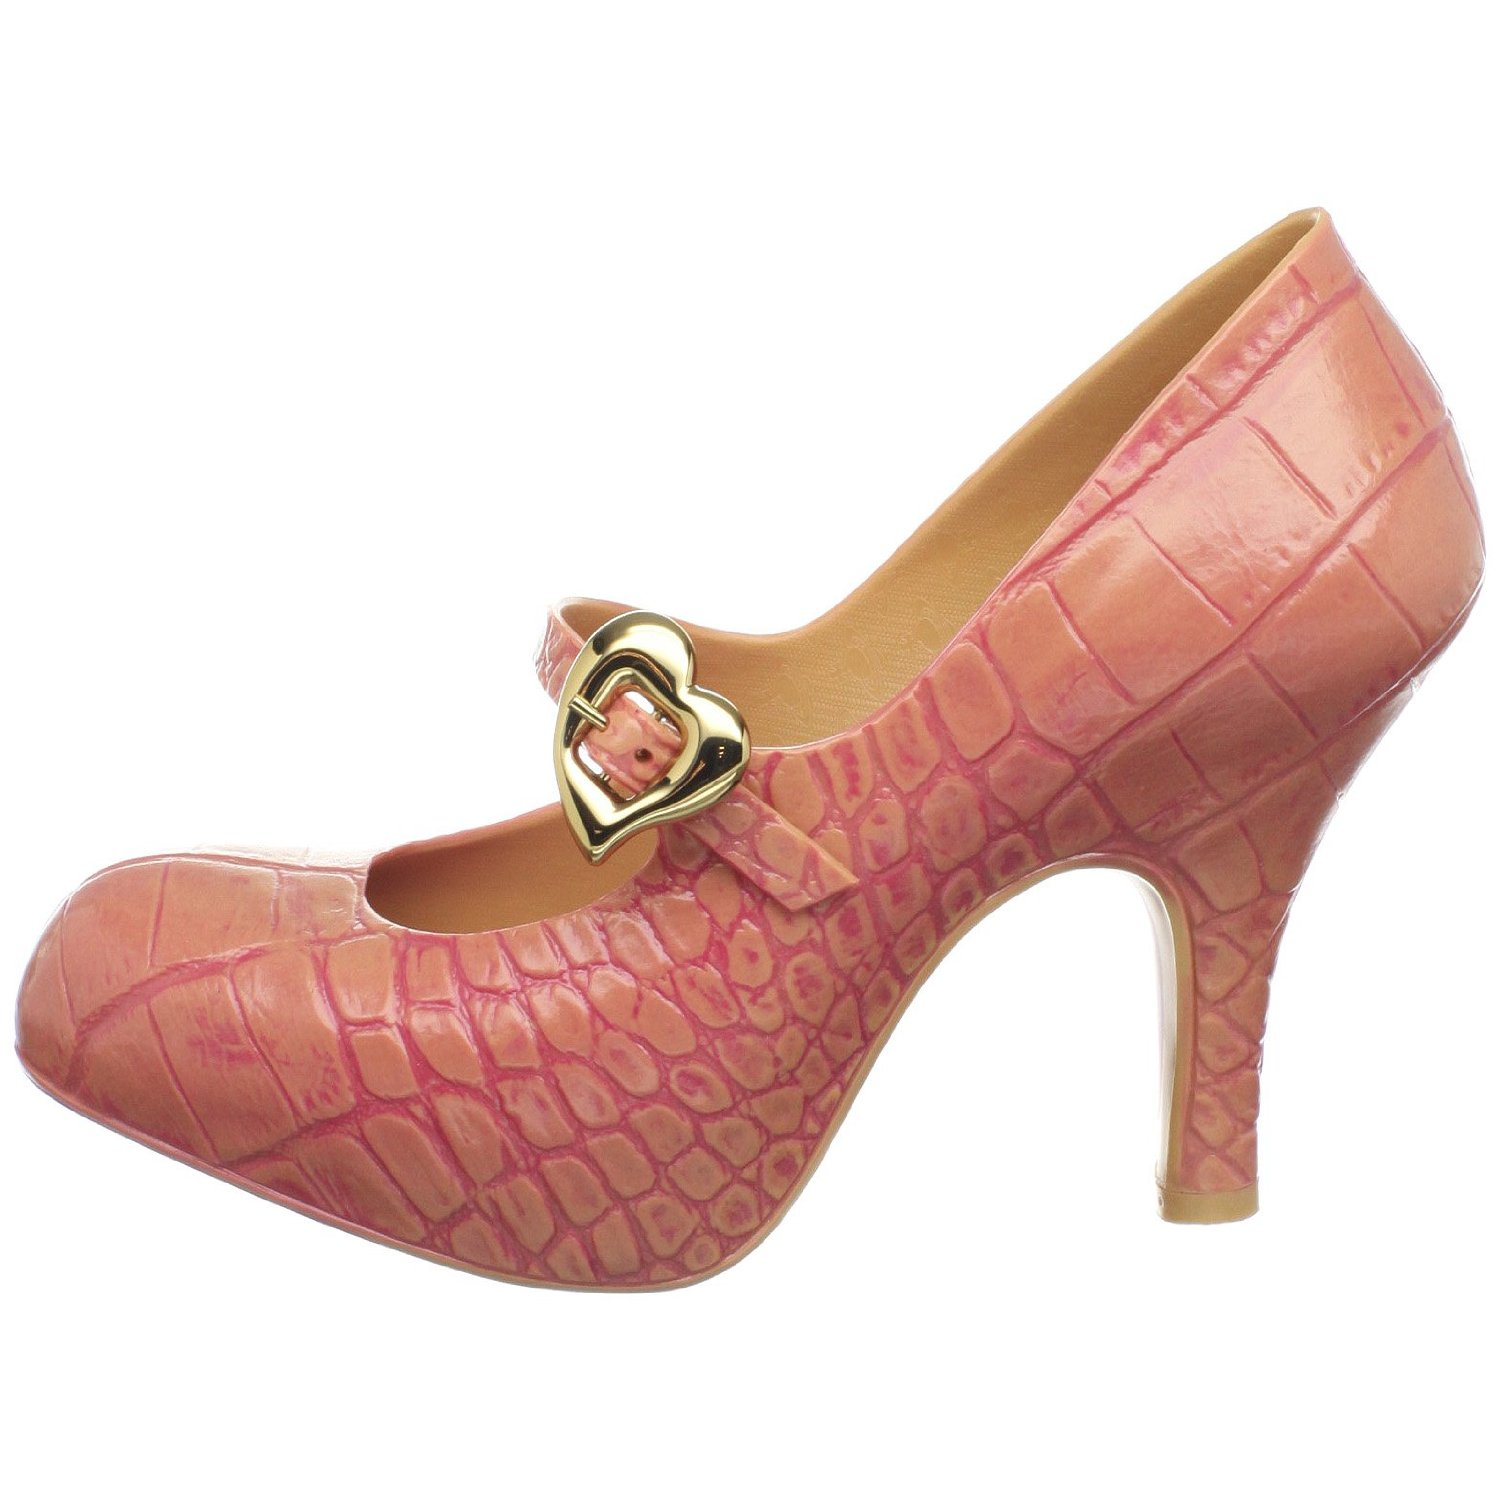 Beautiful vegan Vivienne Westwood mock croc heels